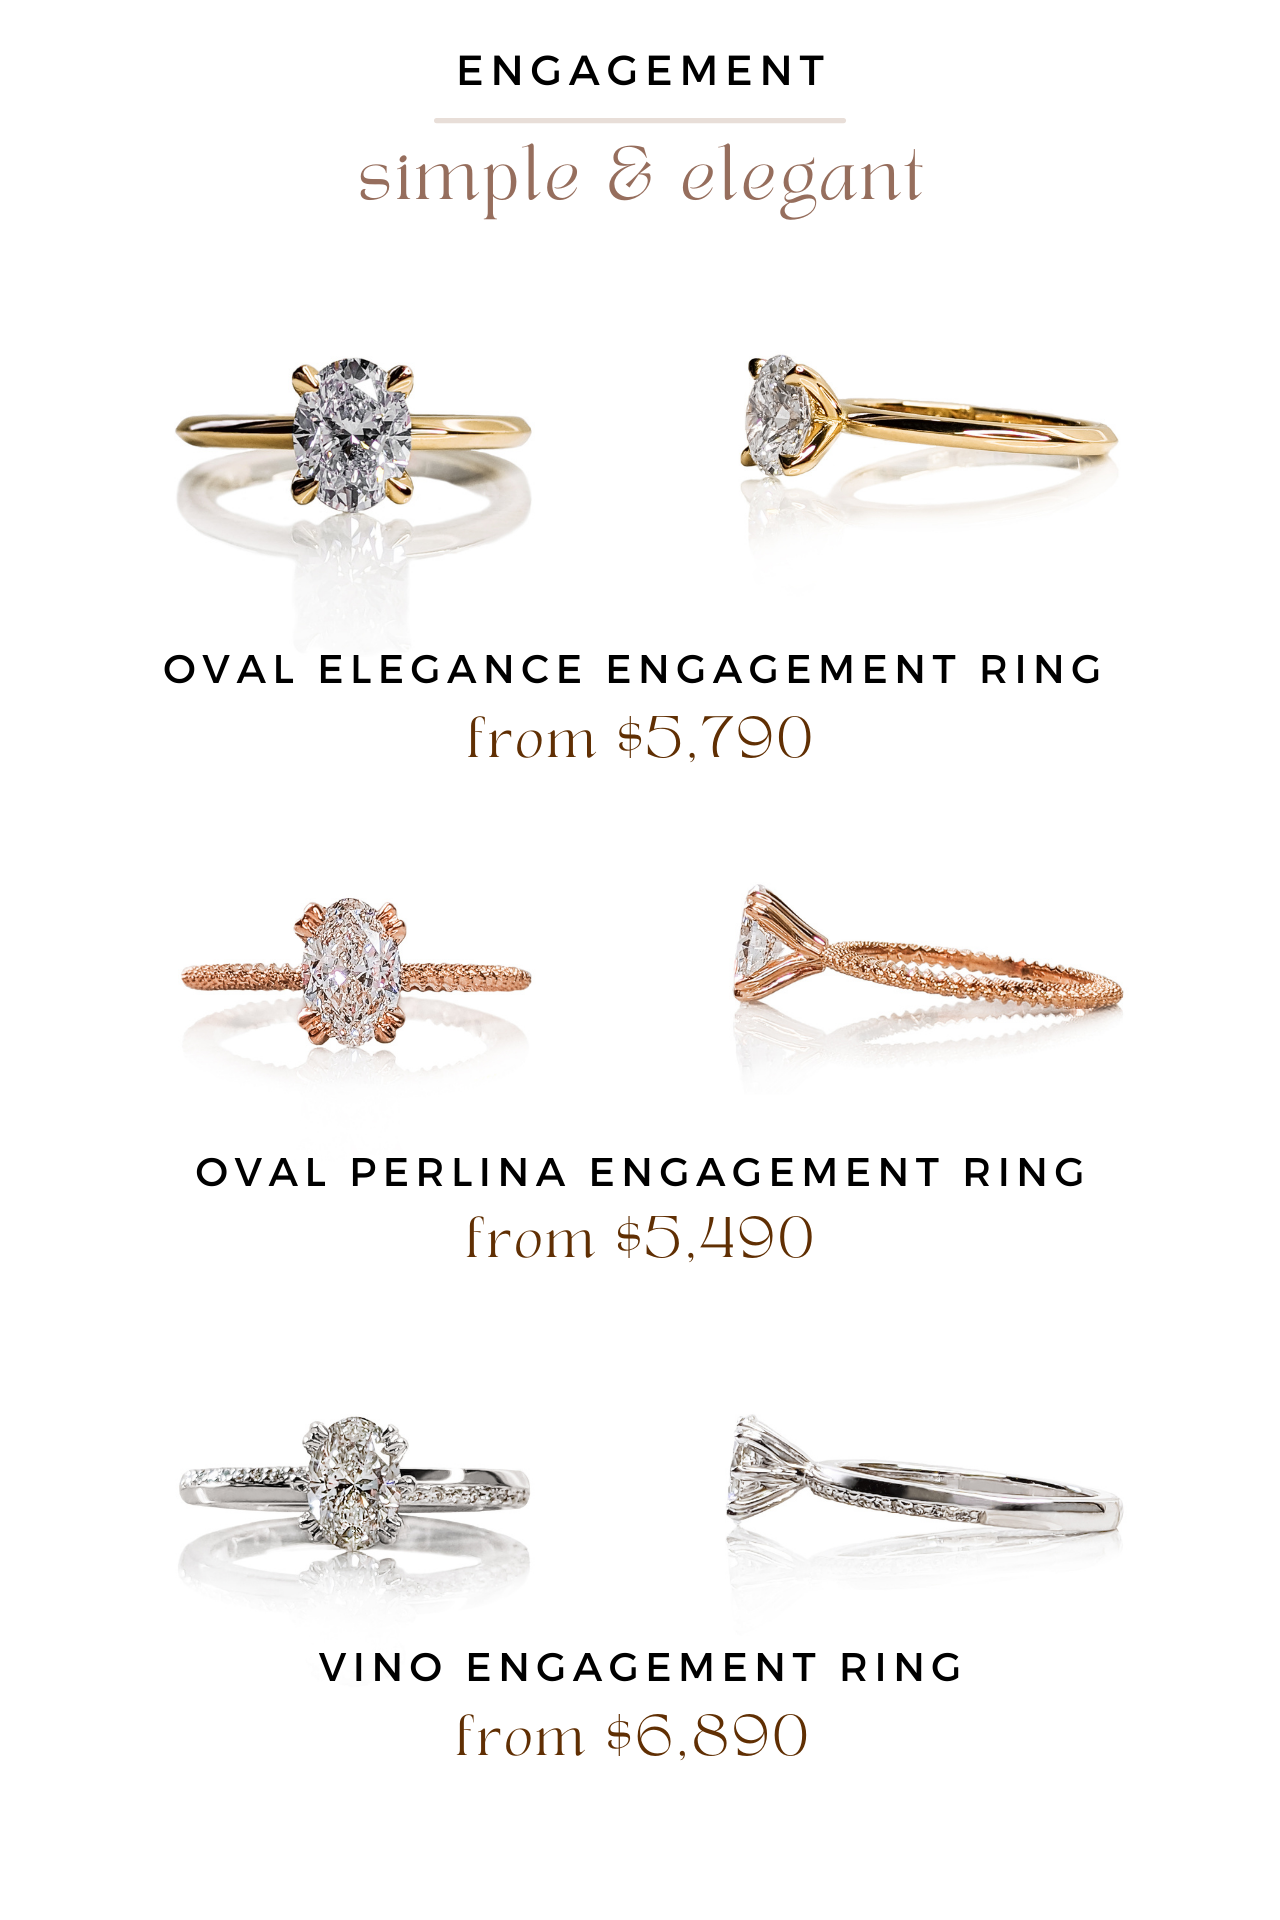 oval elegance engagement ring, oval perlina engagement ring, vino engagement ring